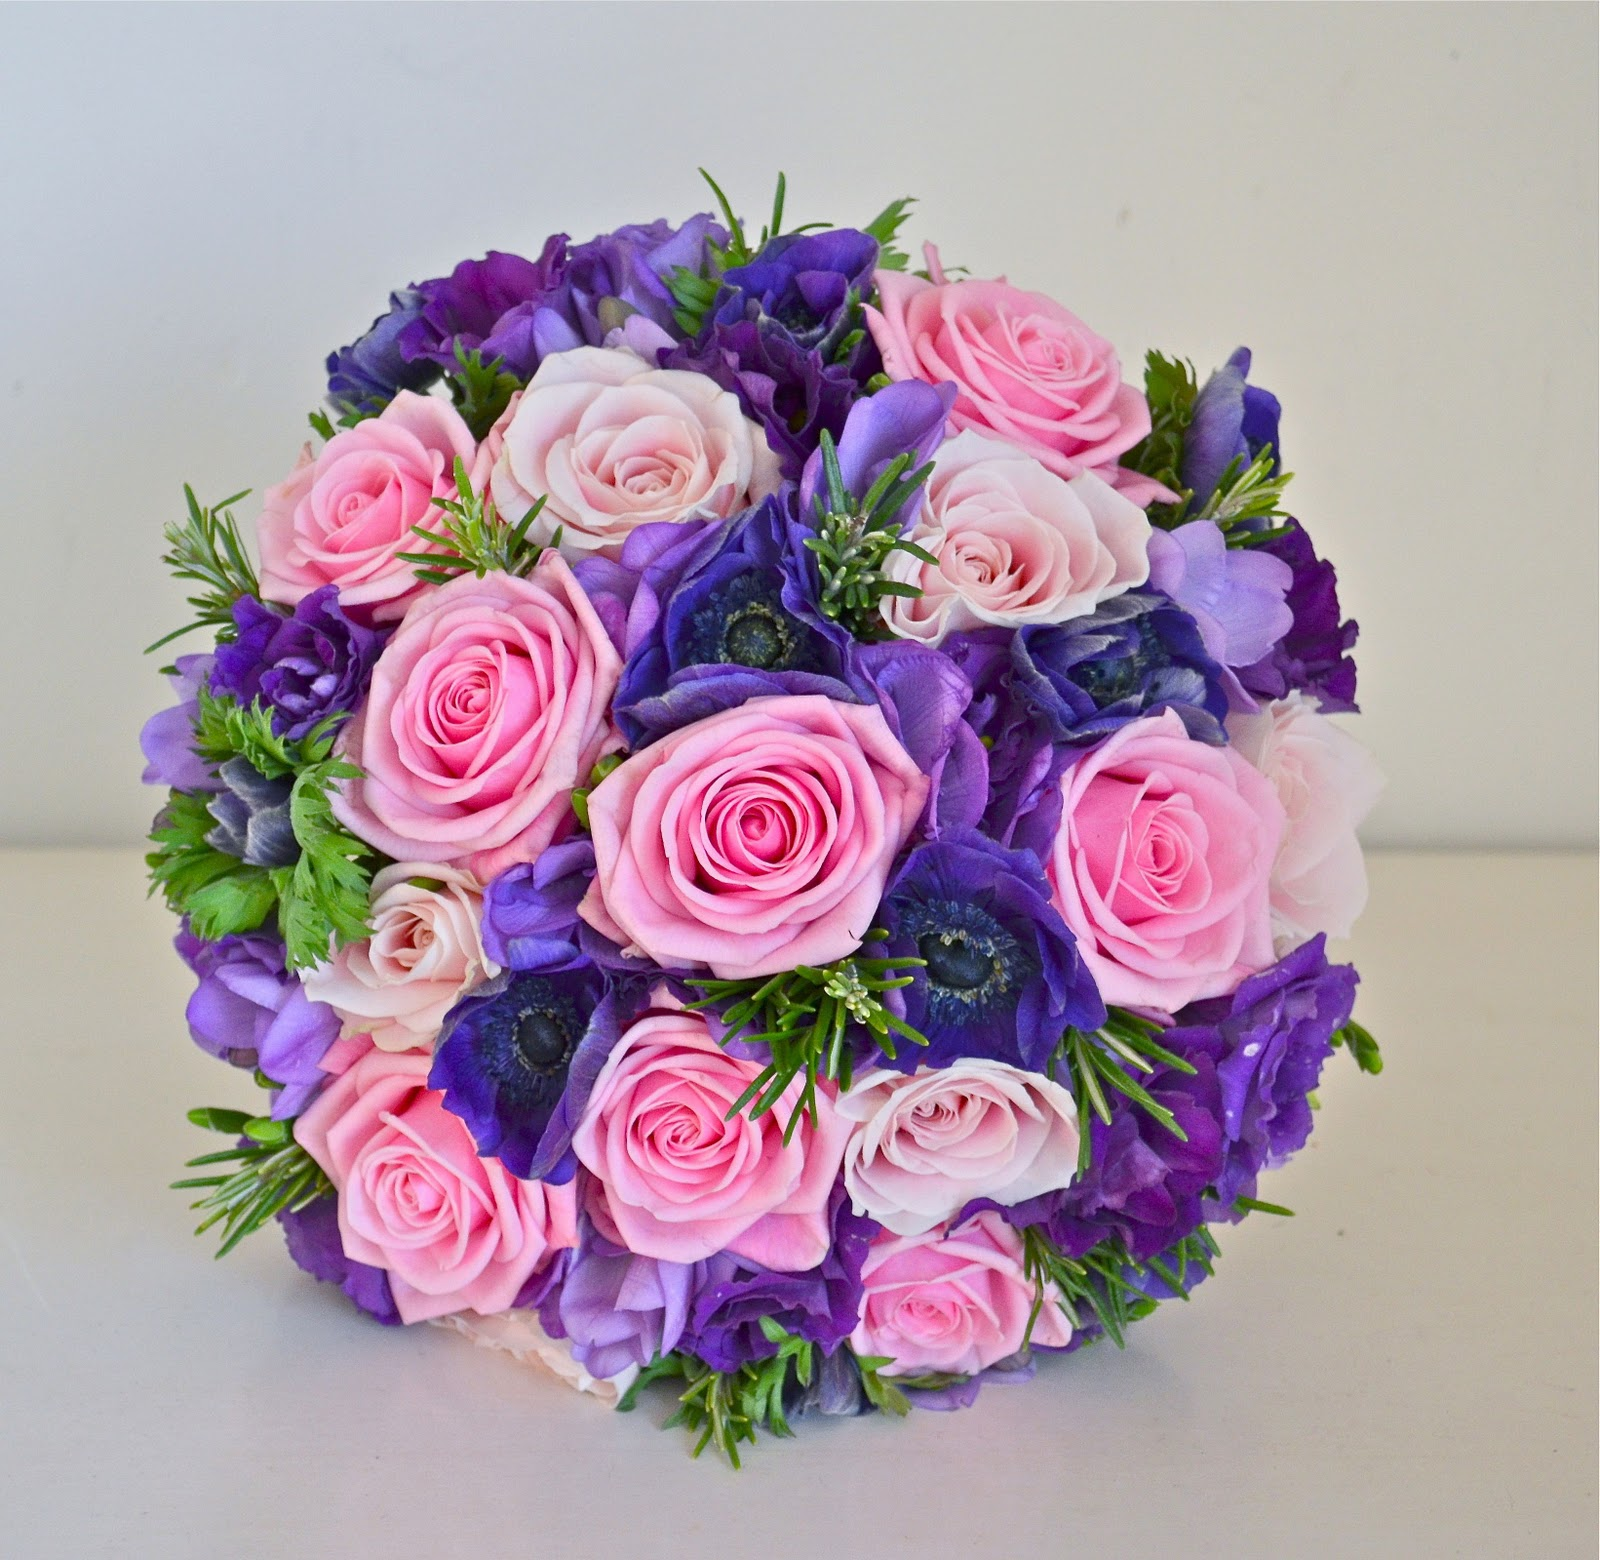 Wedding flowers blog jonquils pink and purple wedding flowers jonquils pink and purple wedding flowers mightylinksfo